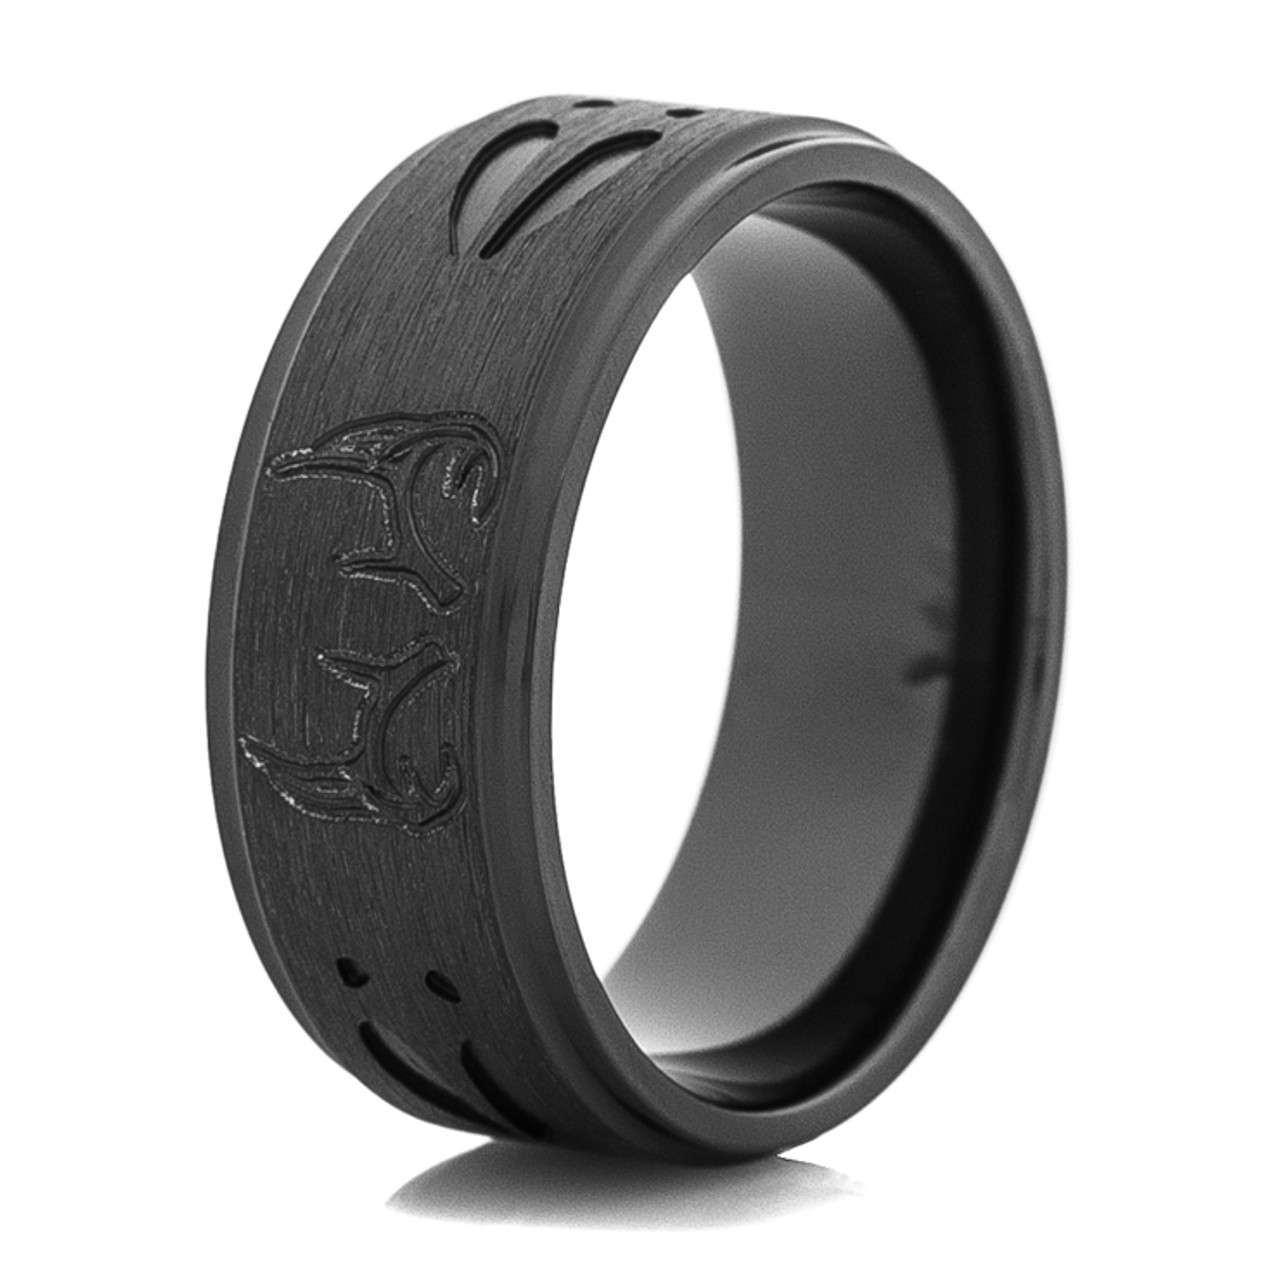 deer band rings jewelrybyjohan ring wedding antler alternative wp with by for men women